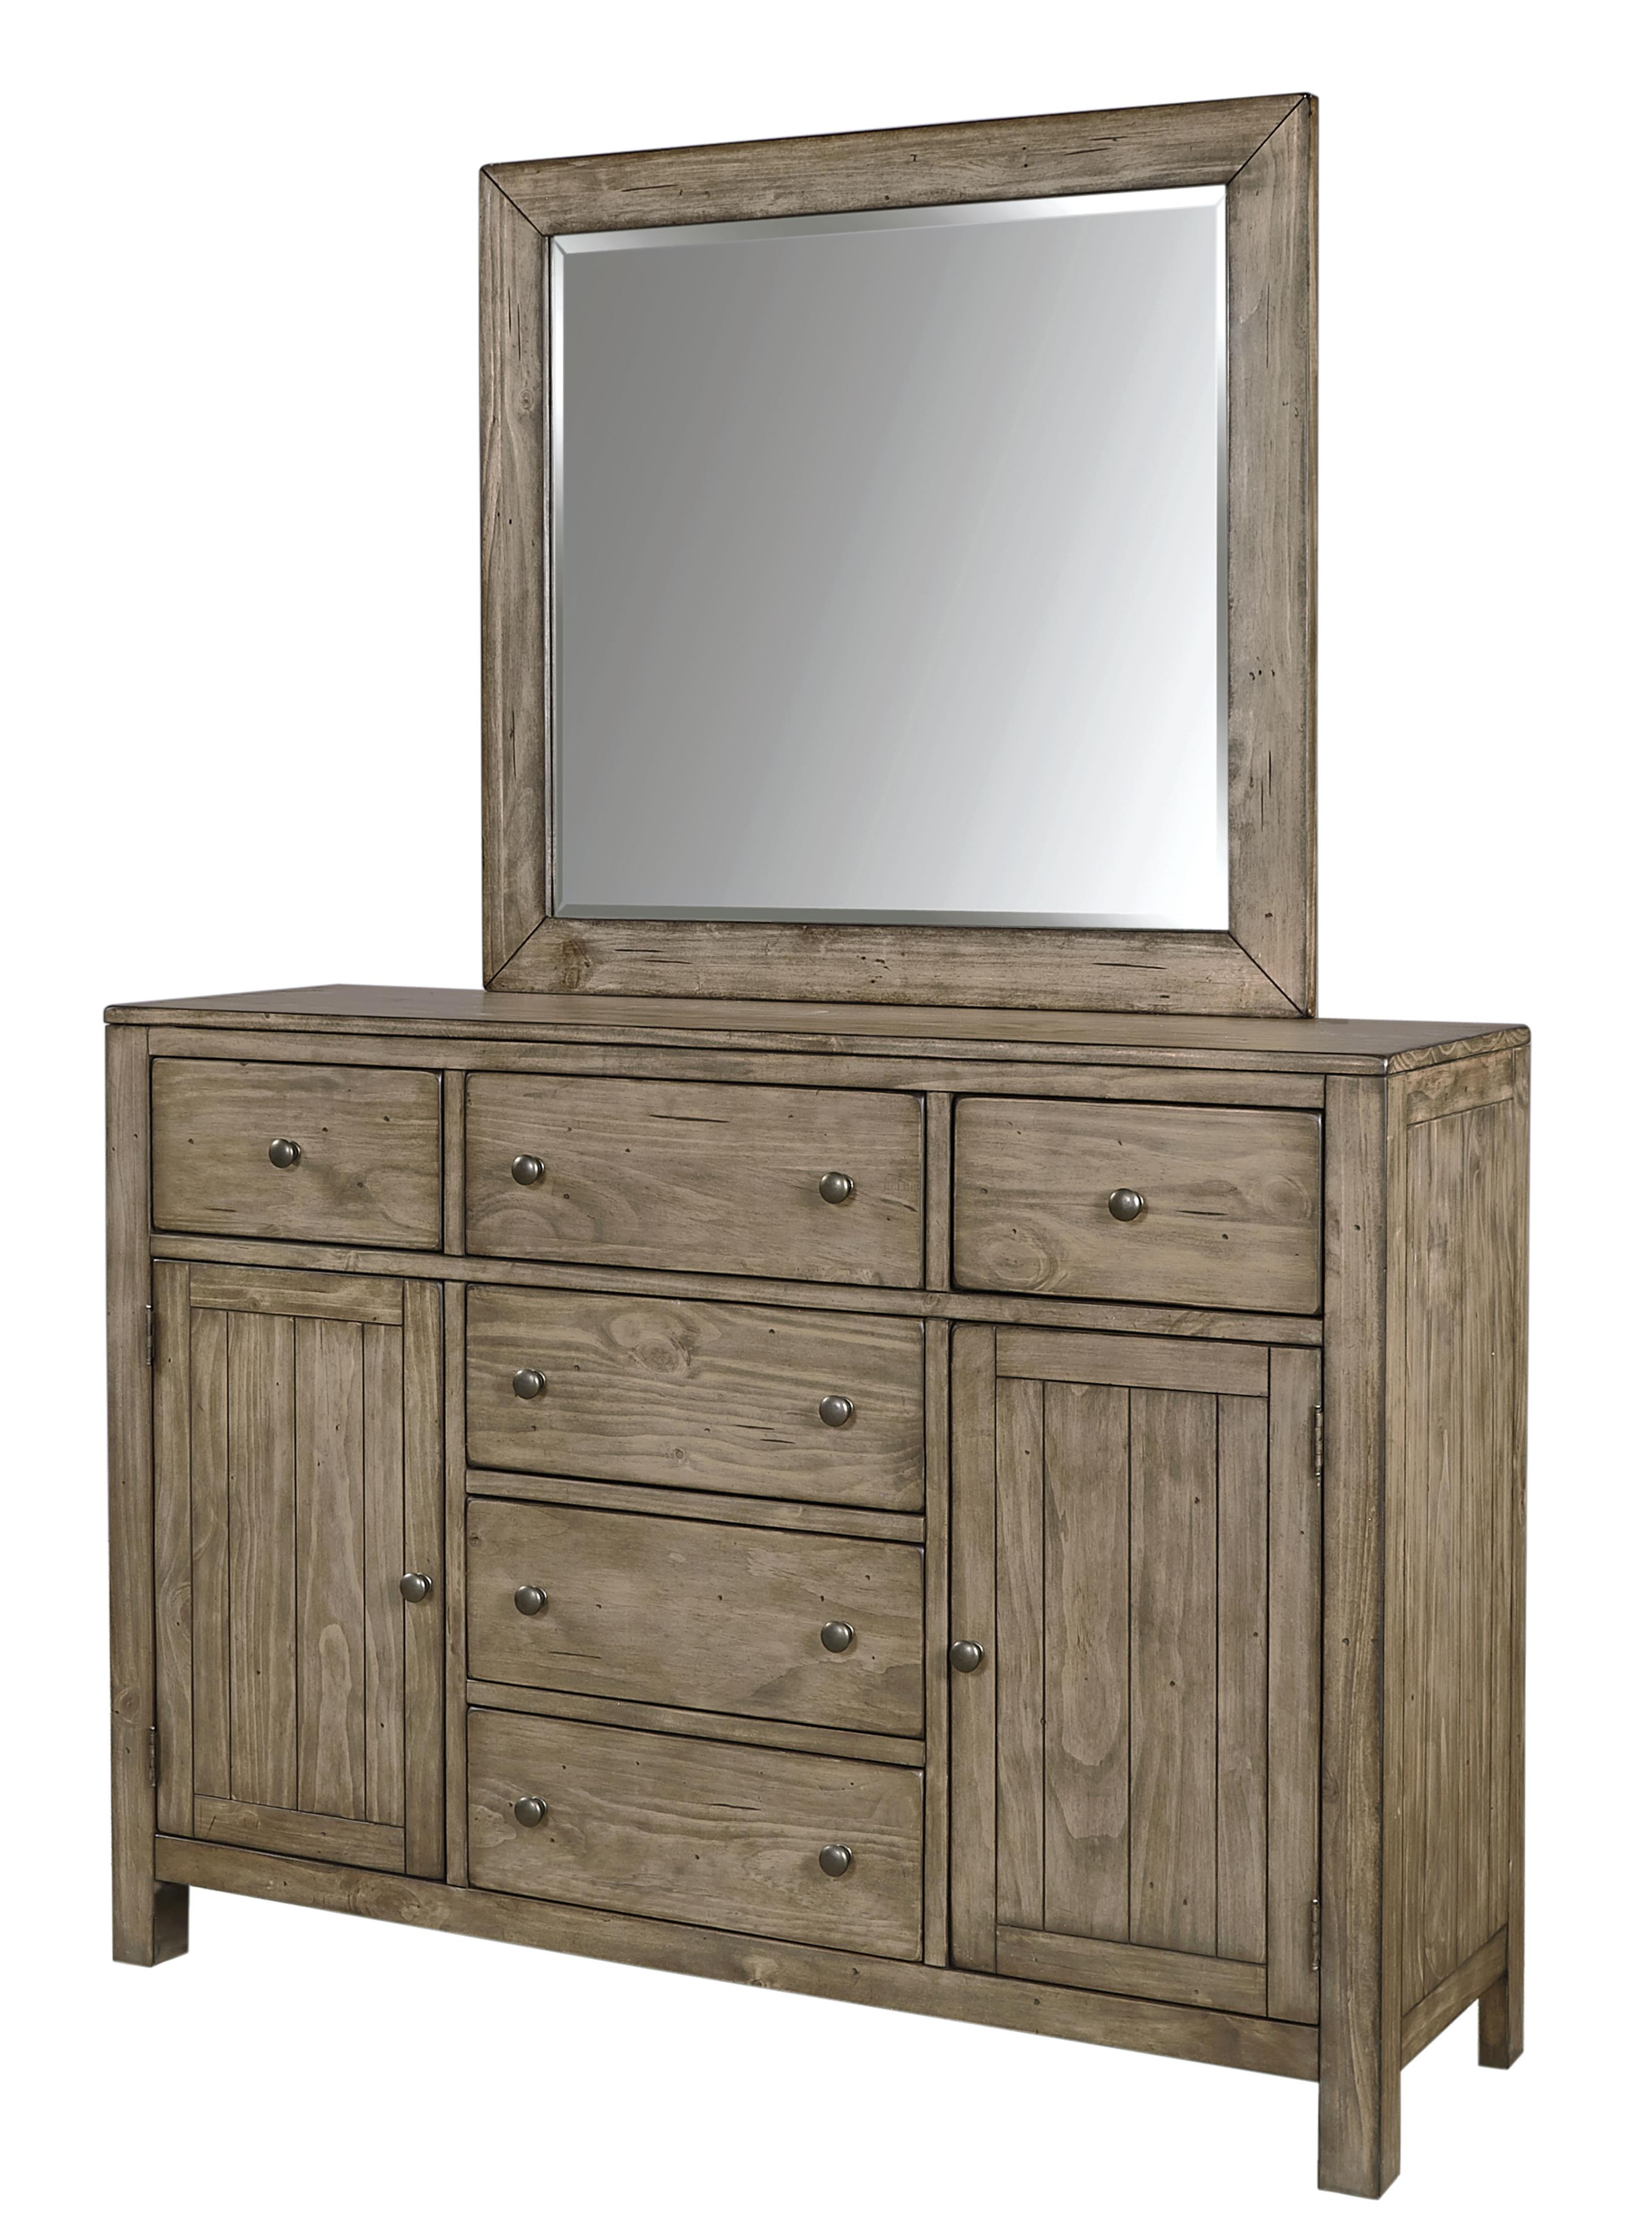 Aspenhome Tildon Chesser with Landscape Mirror - Item Number: I56-455+463